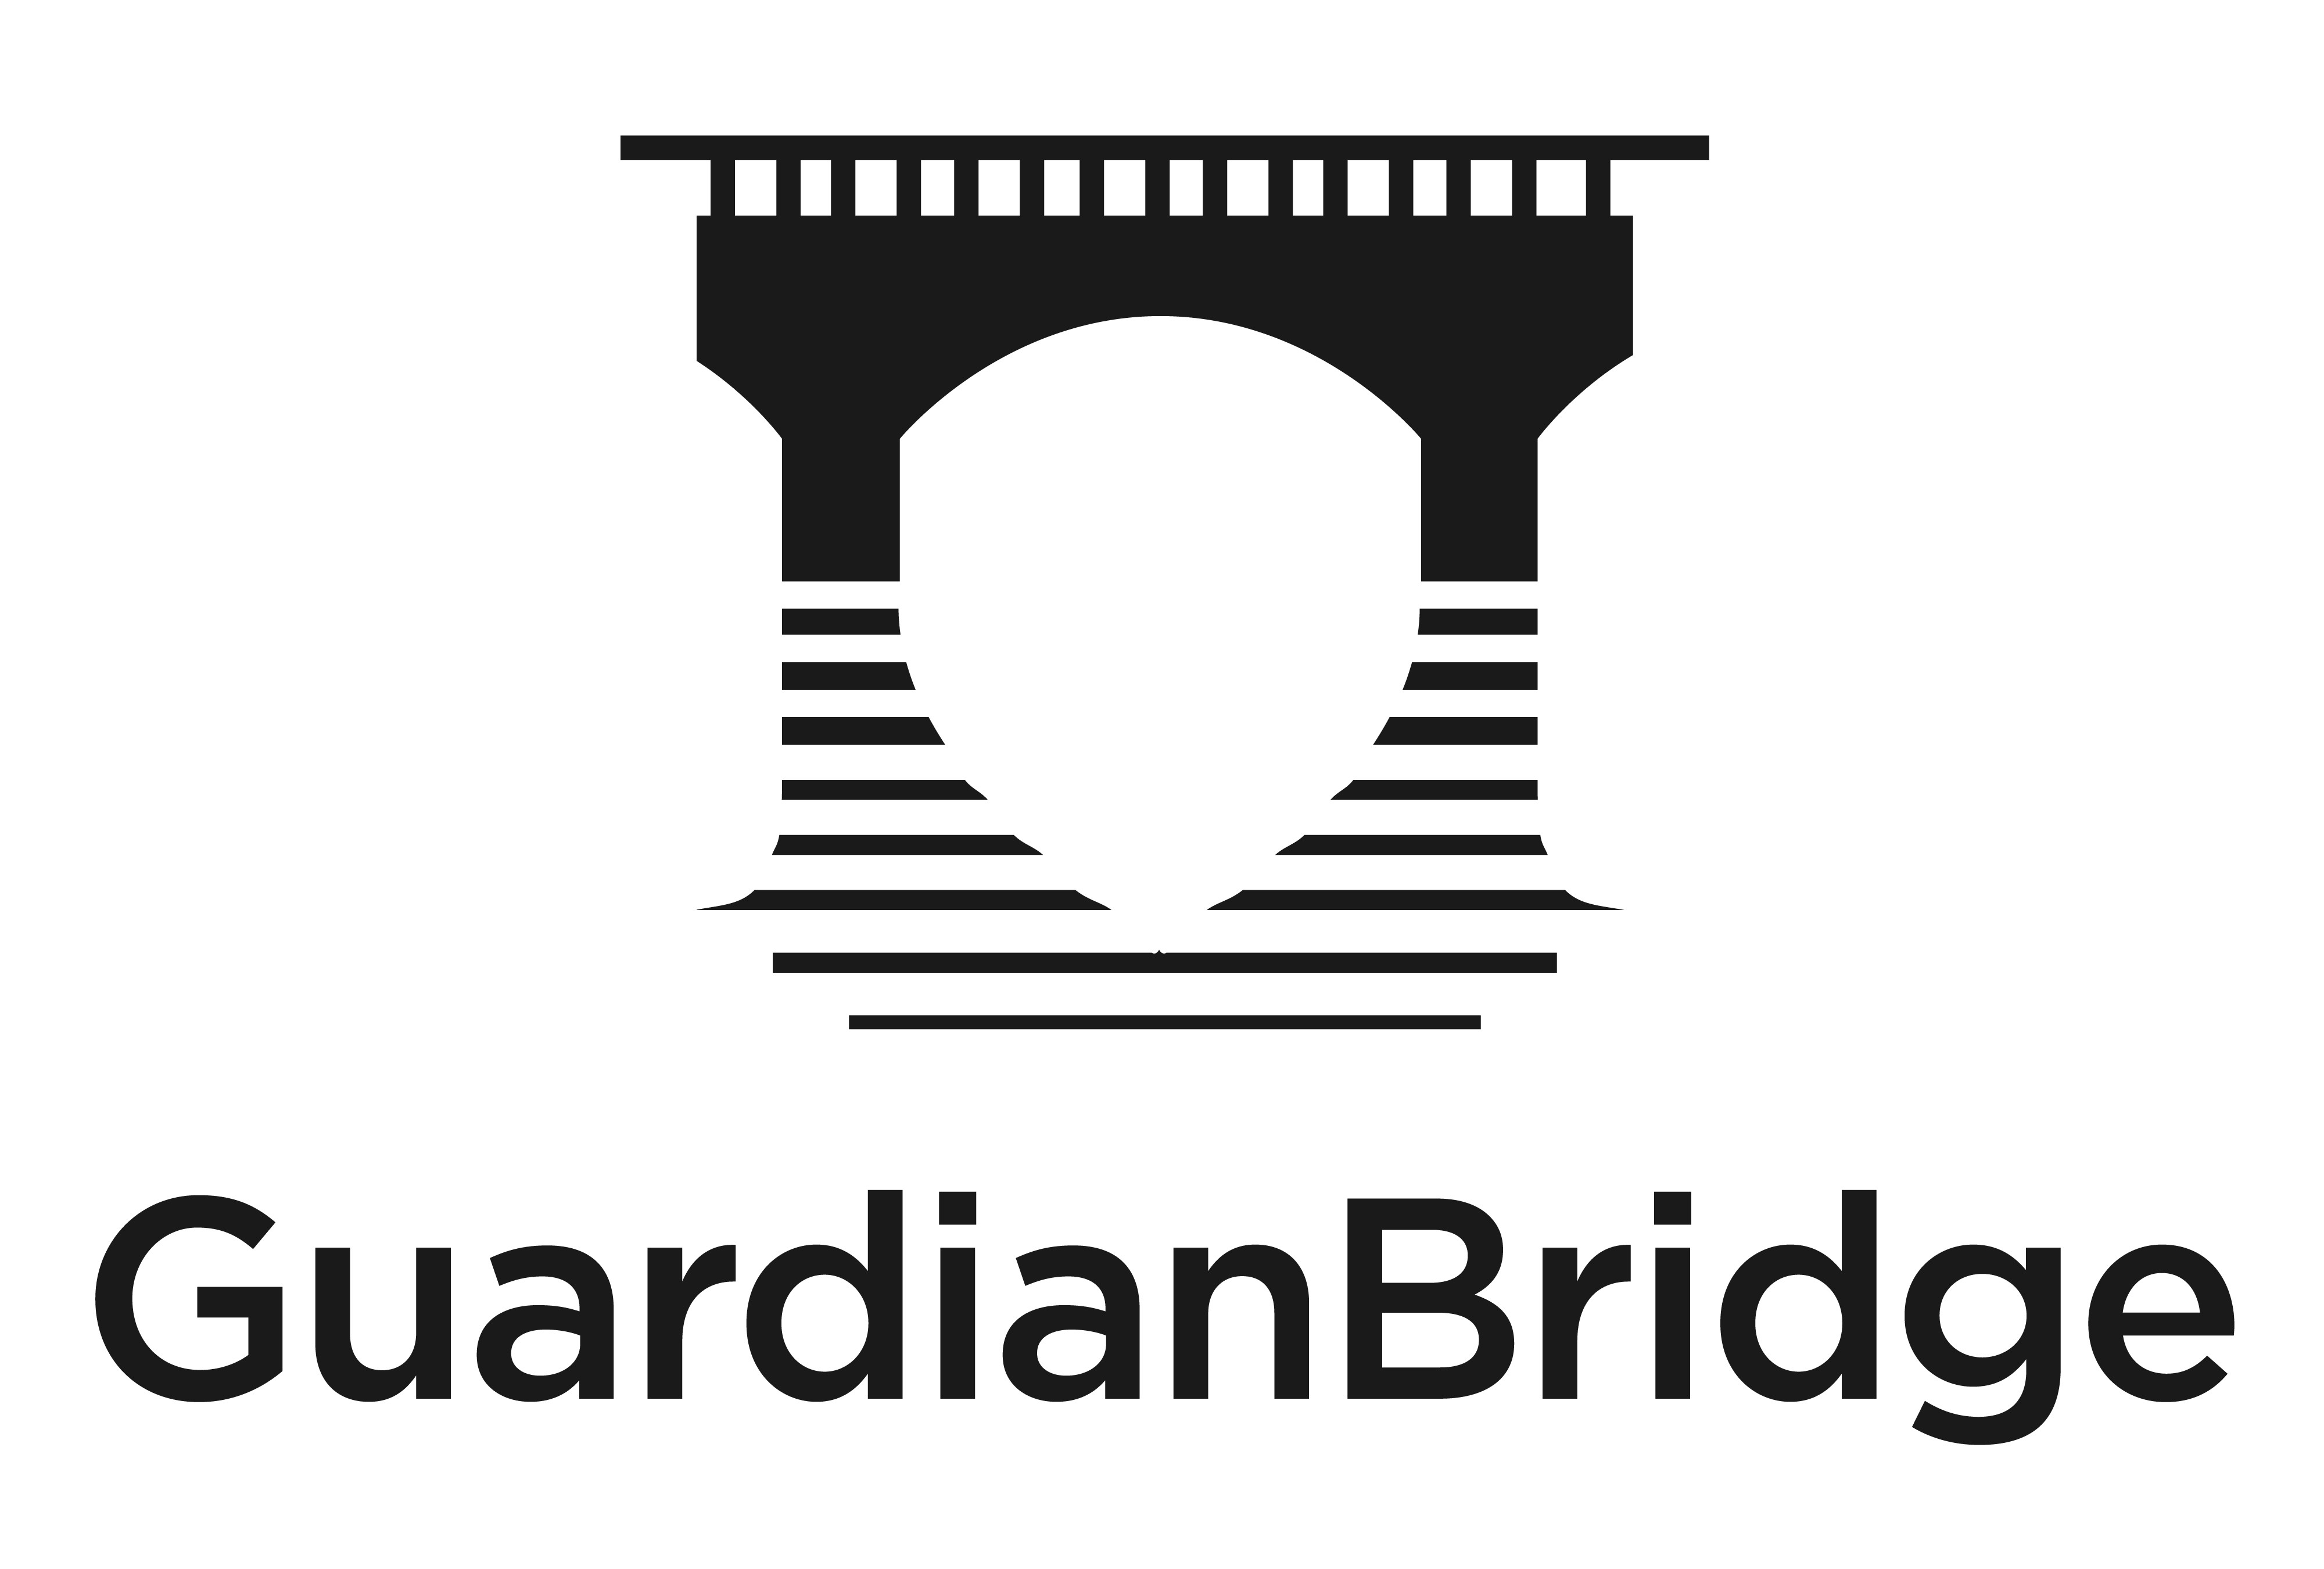 Create an engaging logo for GuardianBridge (a risk management services & software company)